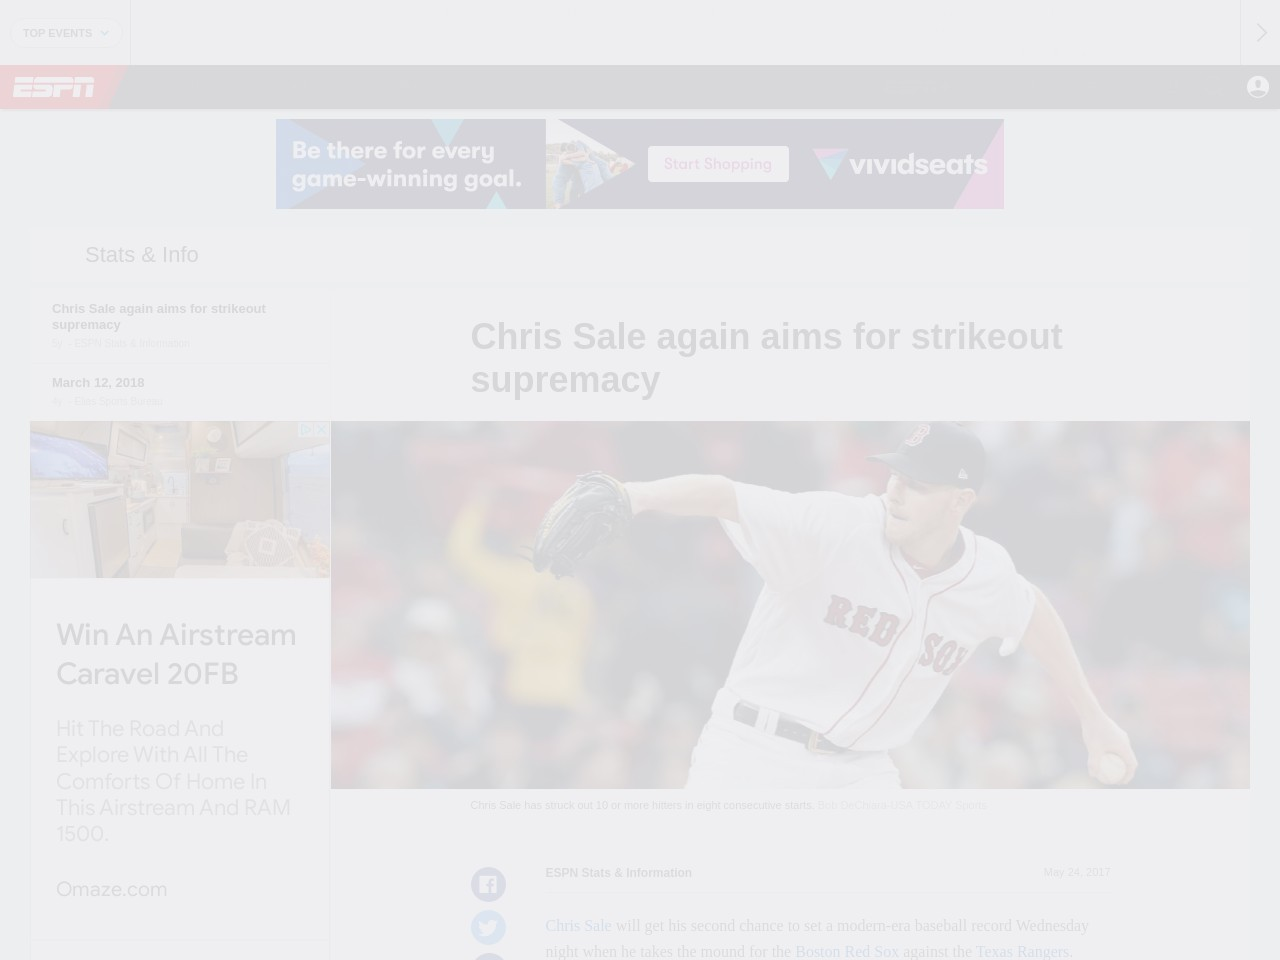 Chris Sale aims for strikeout supremacy